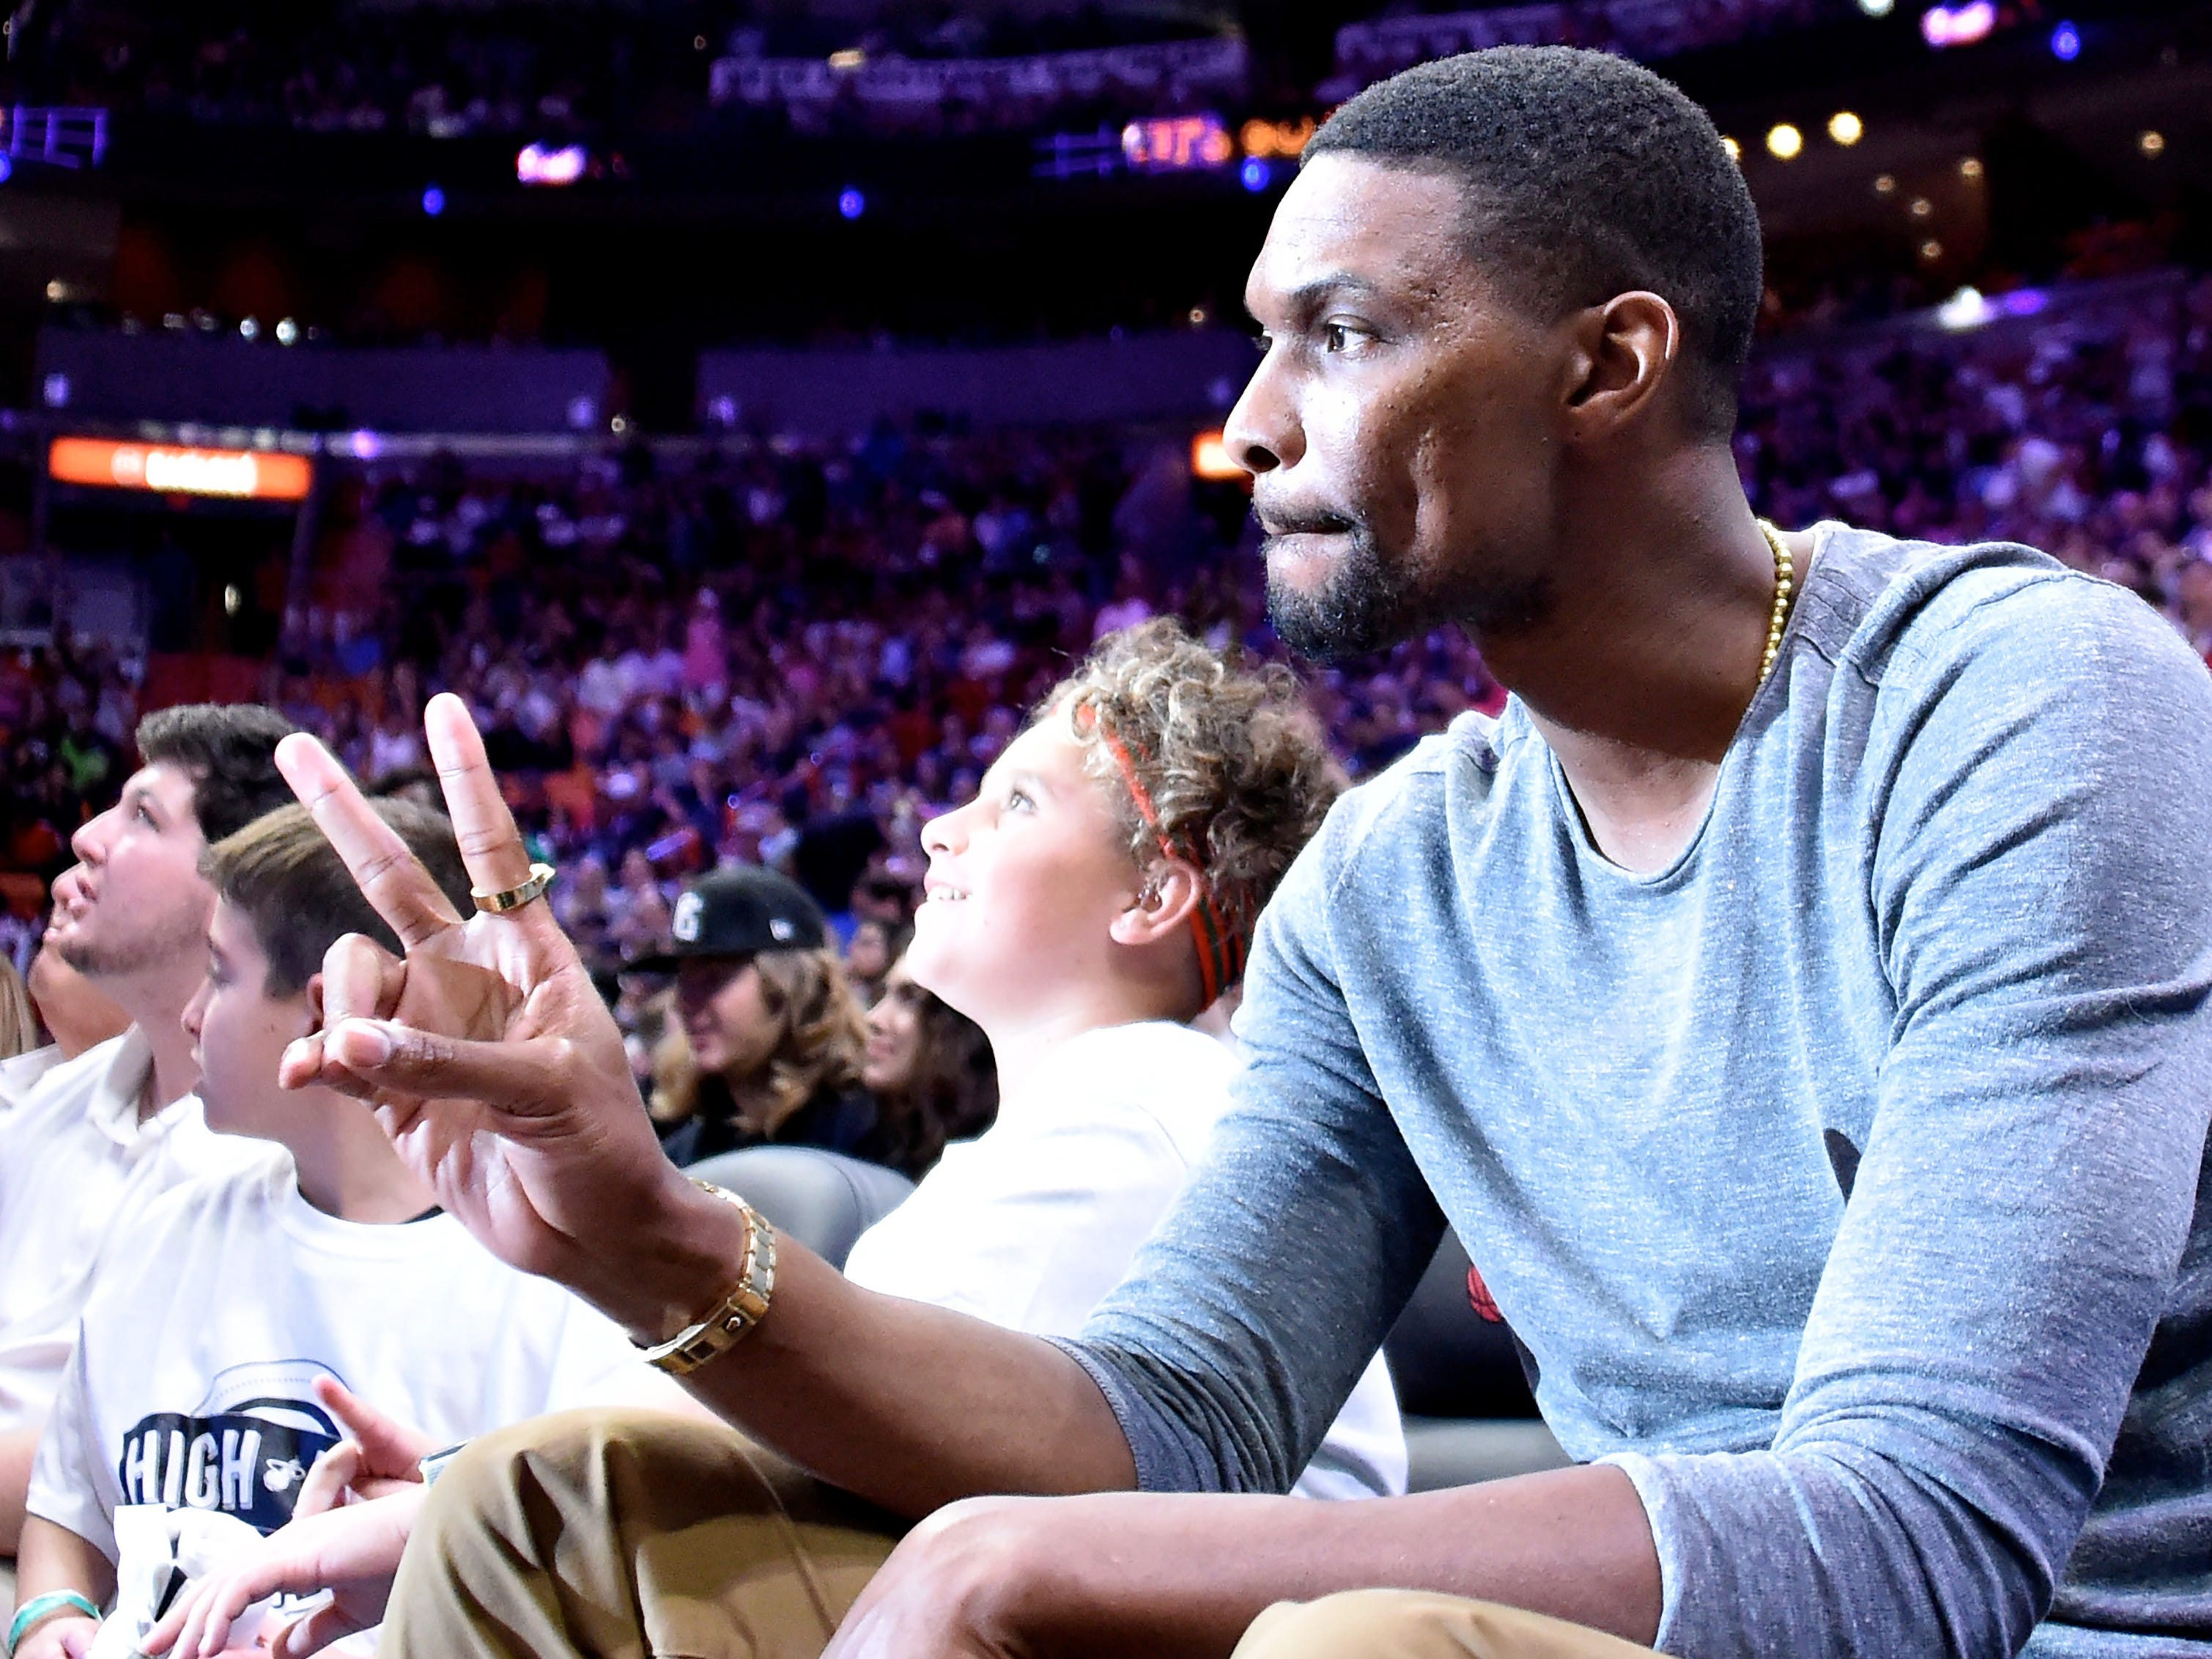 Dec. 30: Former Heat star and two-time champion Chris Bosh takes in a game against the Timberwolves in Miami.